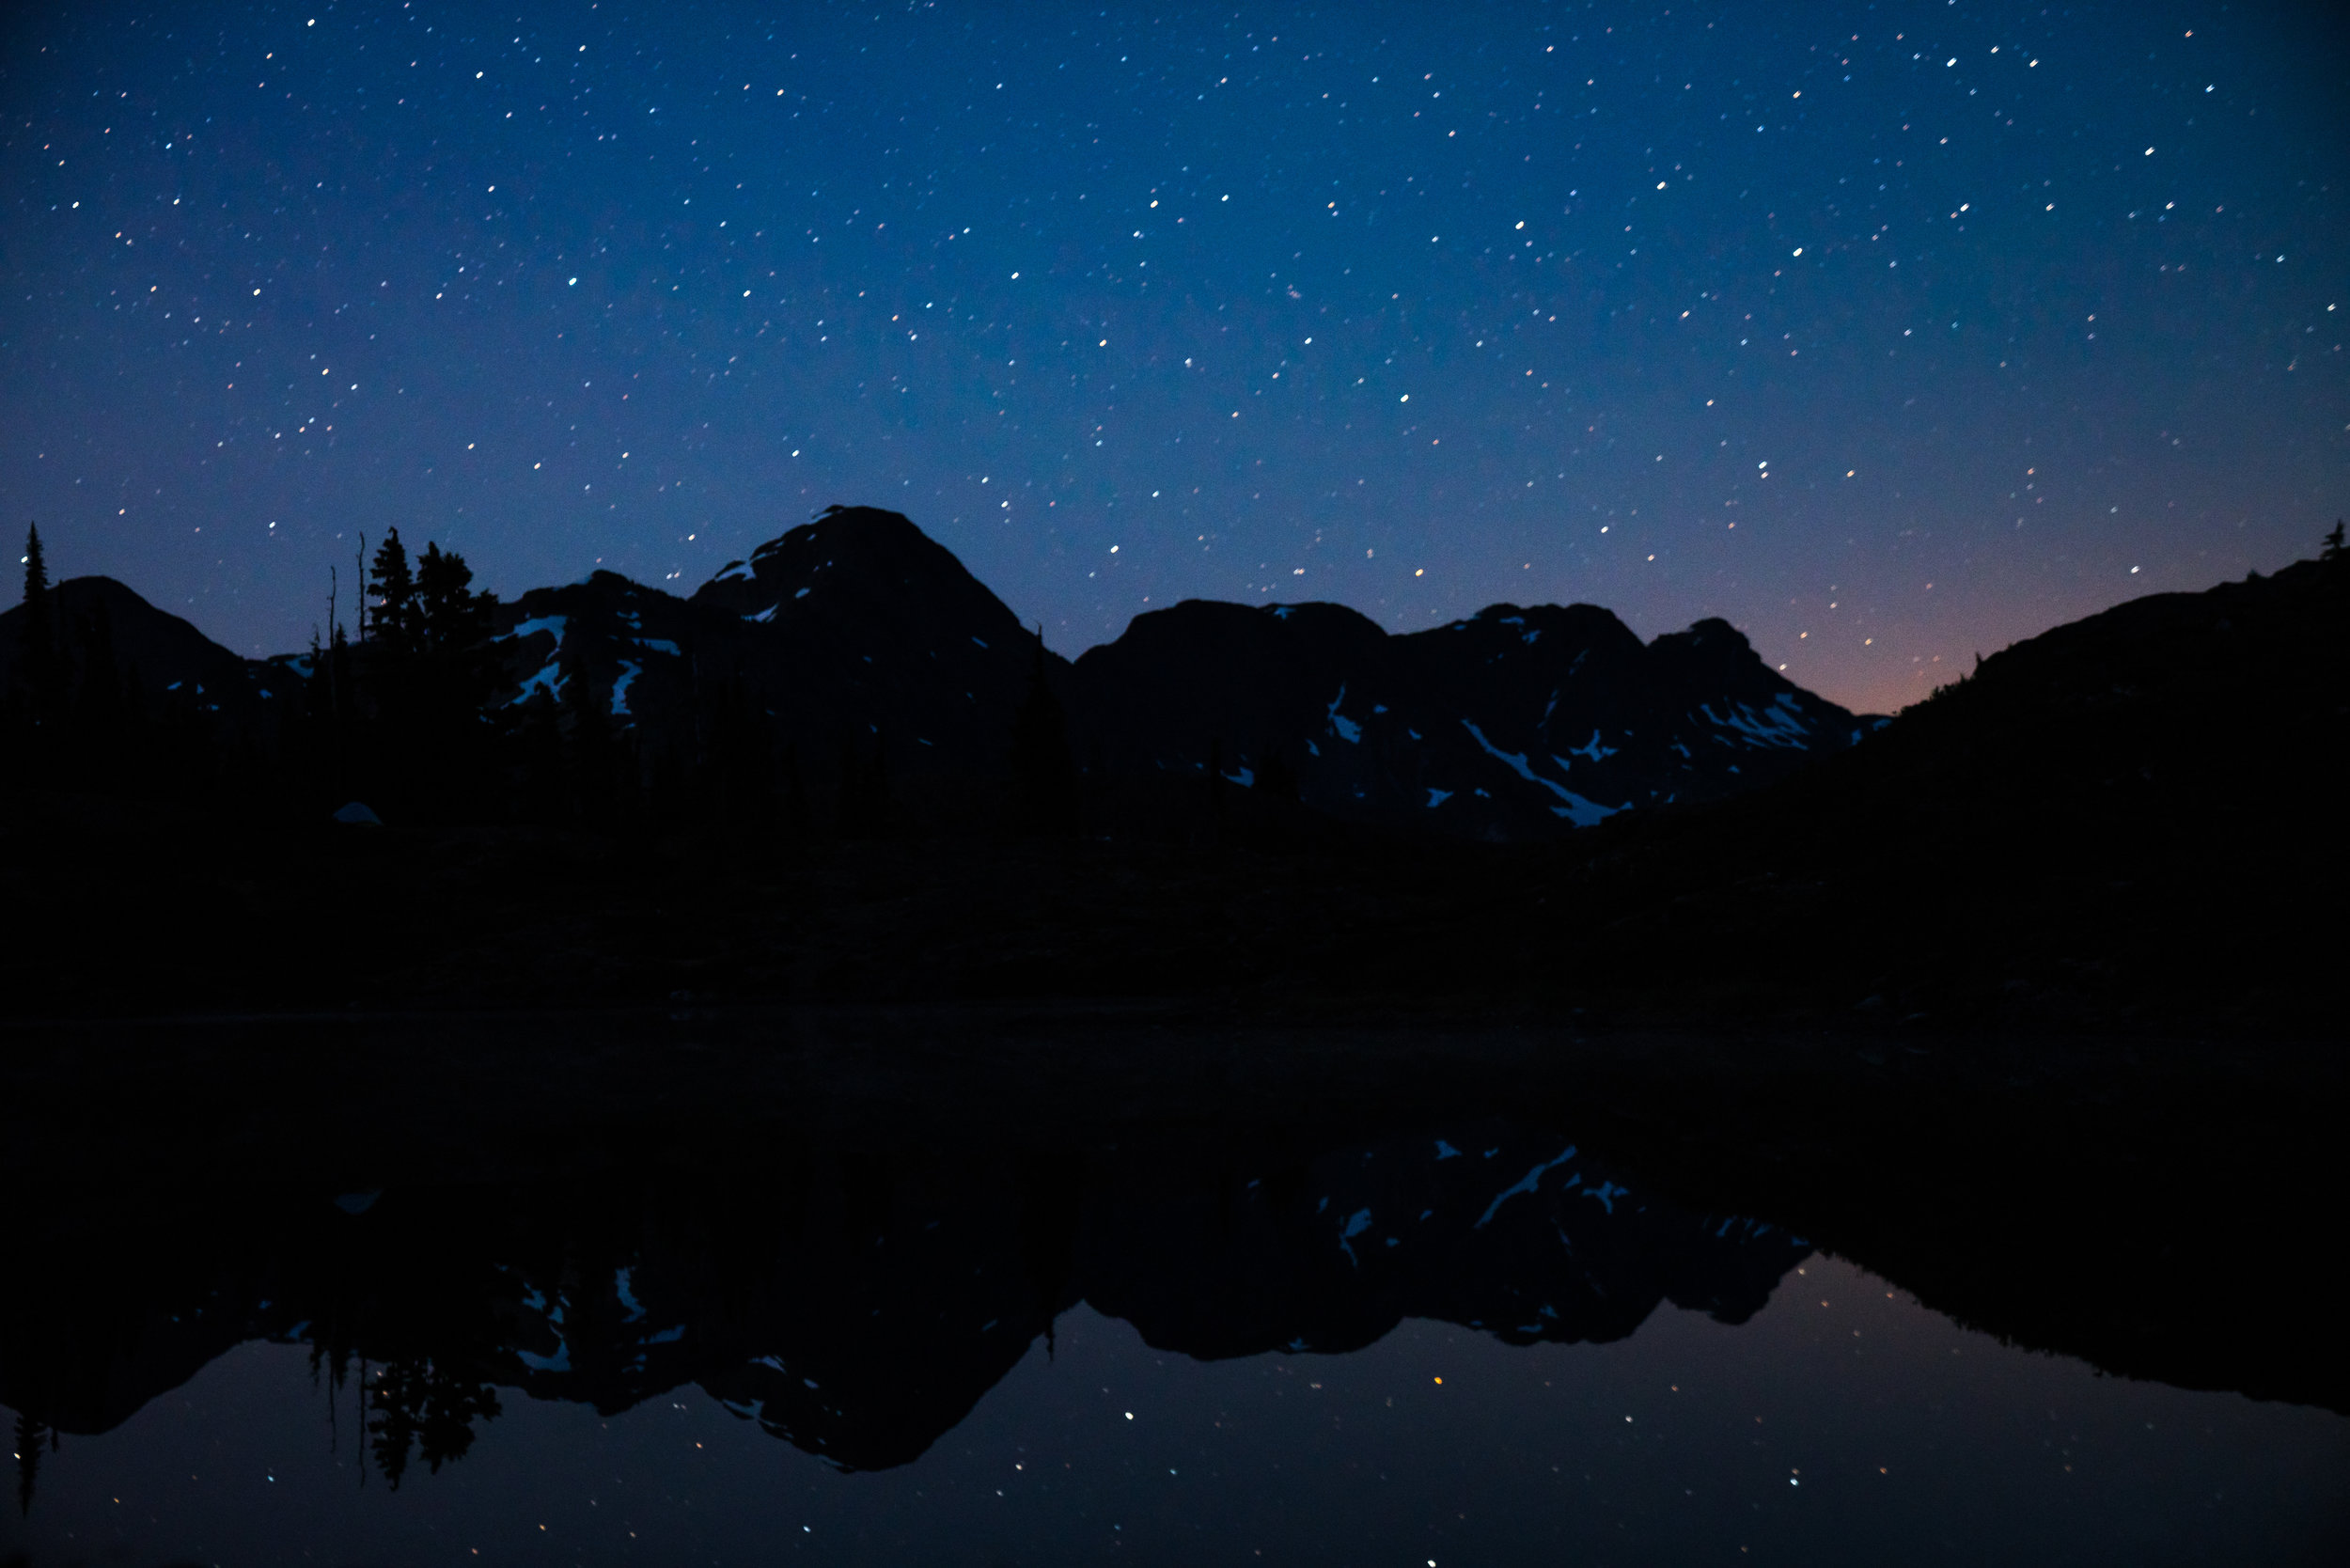 More stars, this time over the tarn.